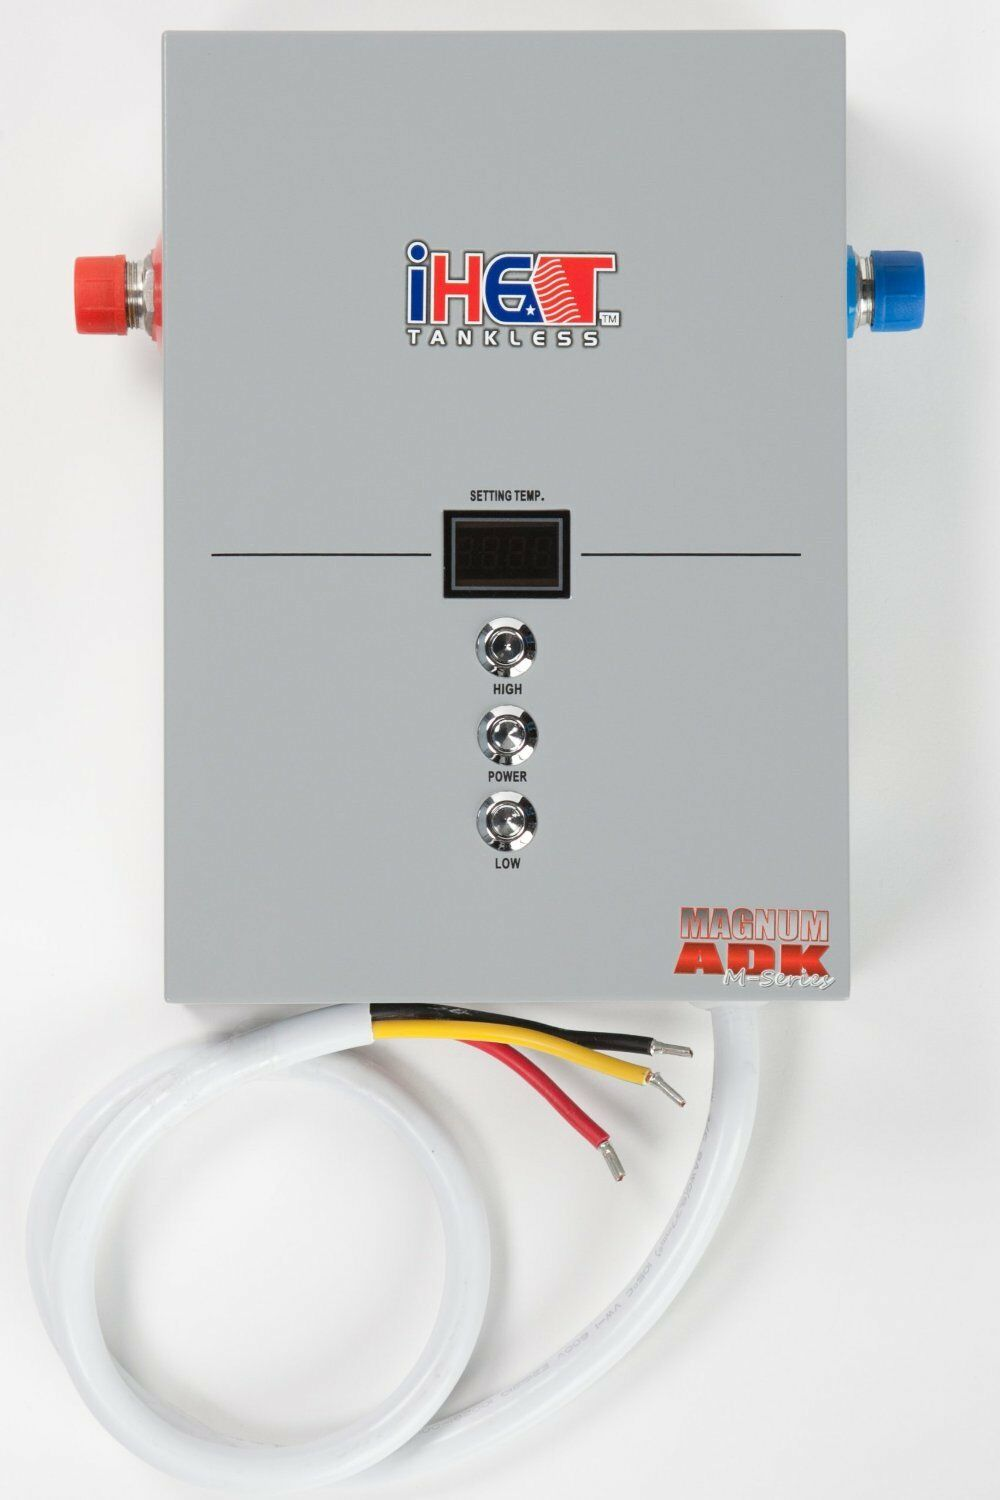 Iheat Electric Tankless Water Heater Model M-16